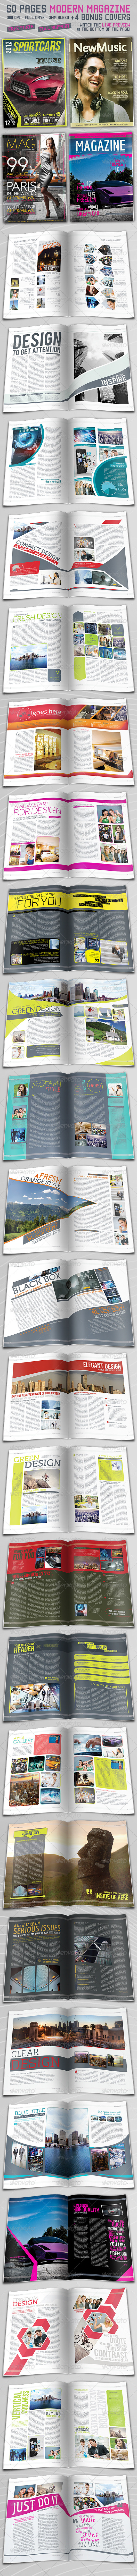 50 Page Modern Magazine Indesign + 4 Covers - Magazines Print Templates